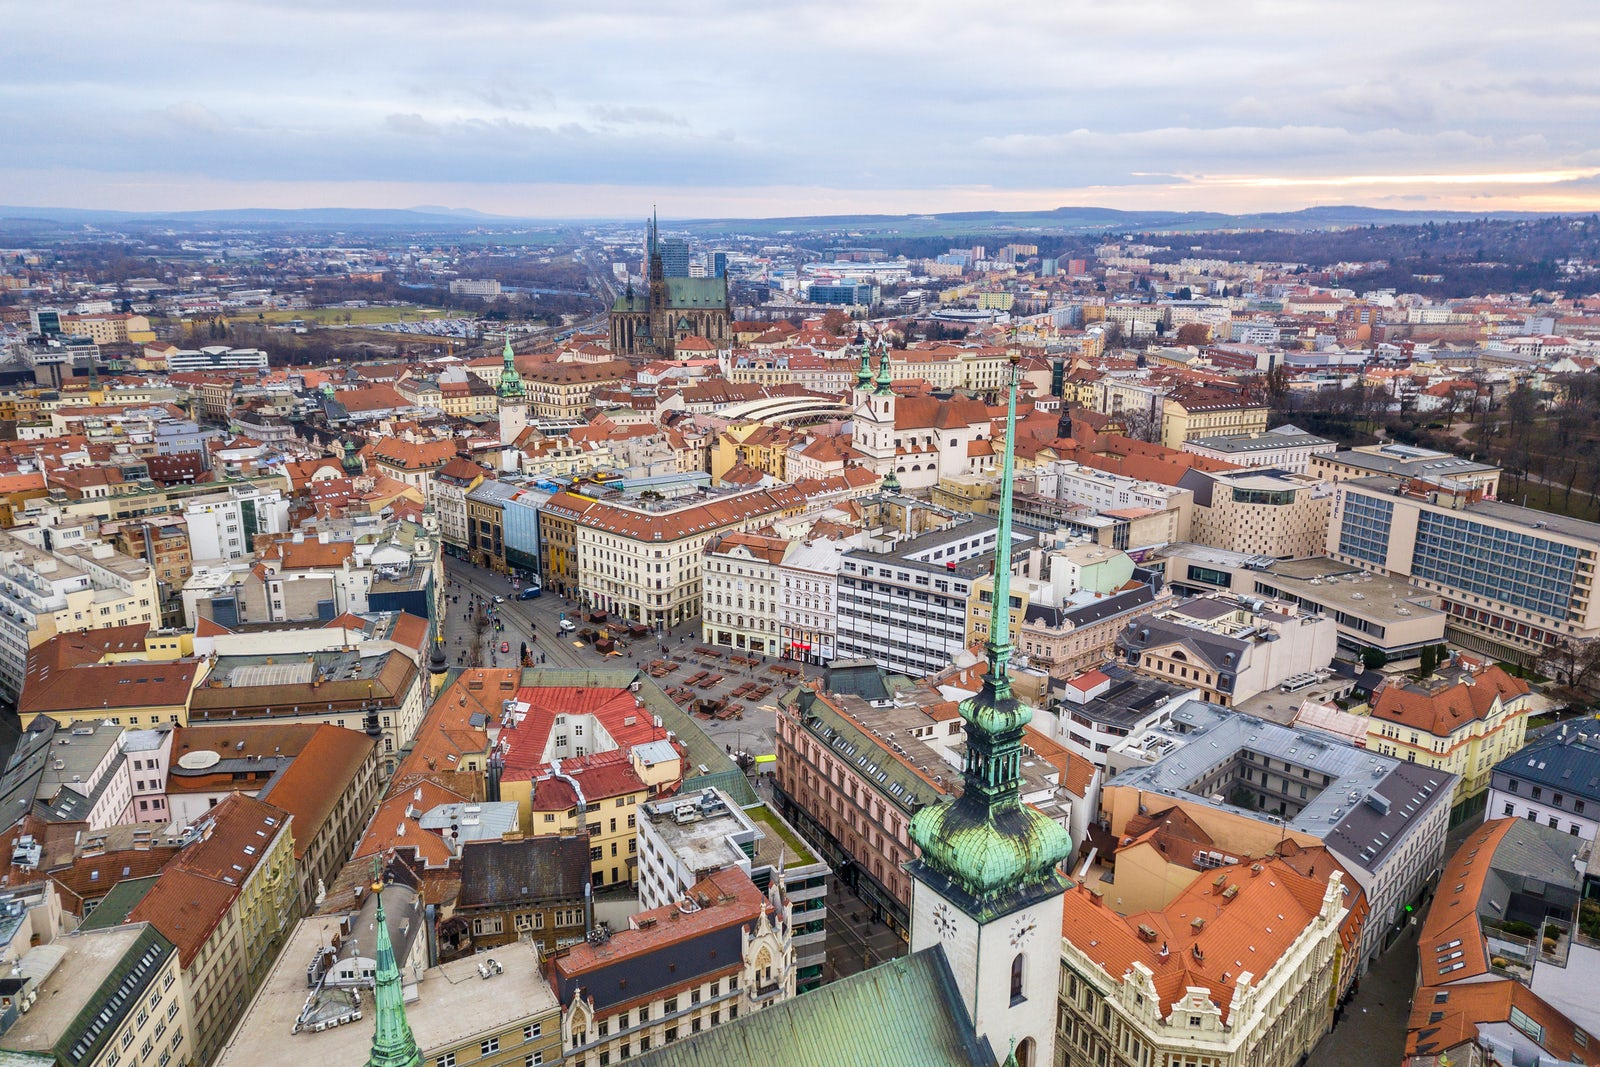 !i18n:pt:data.cities:brno.picture.caption